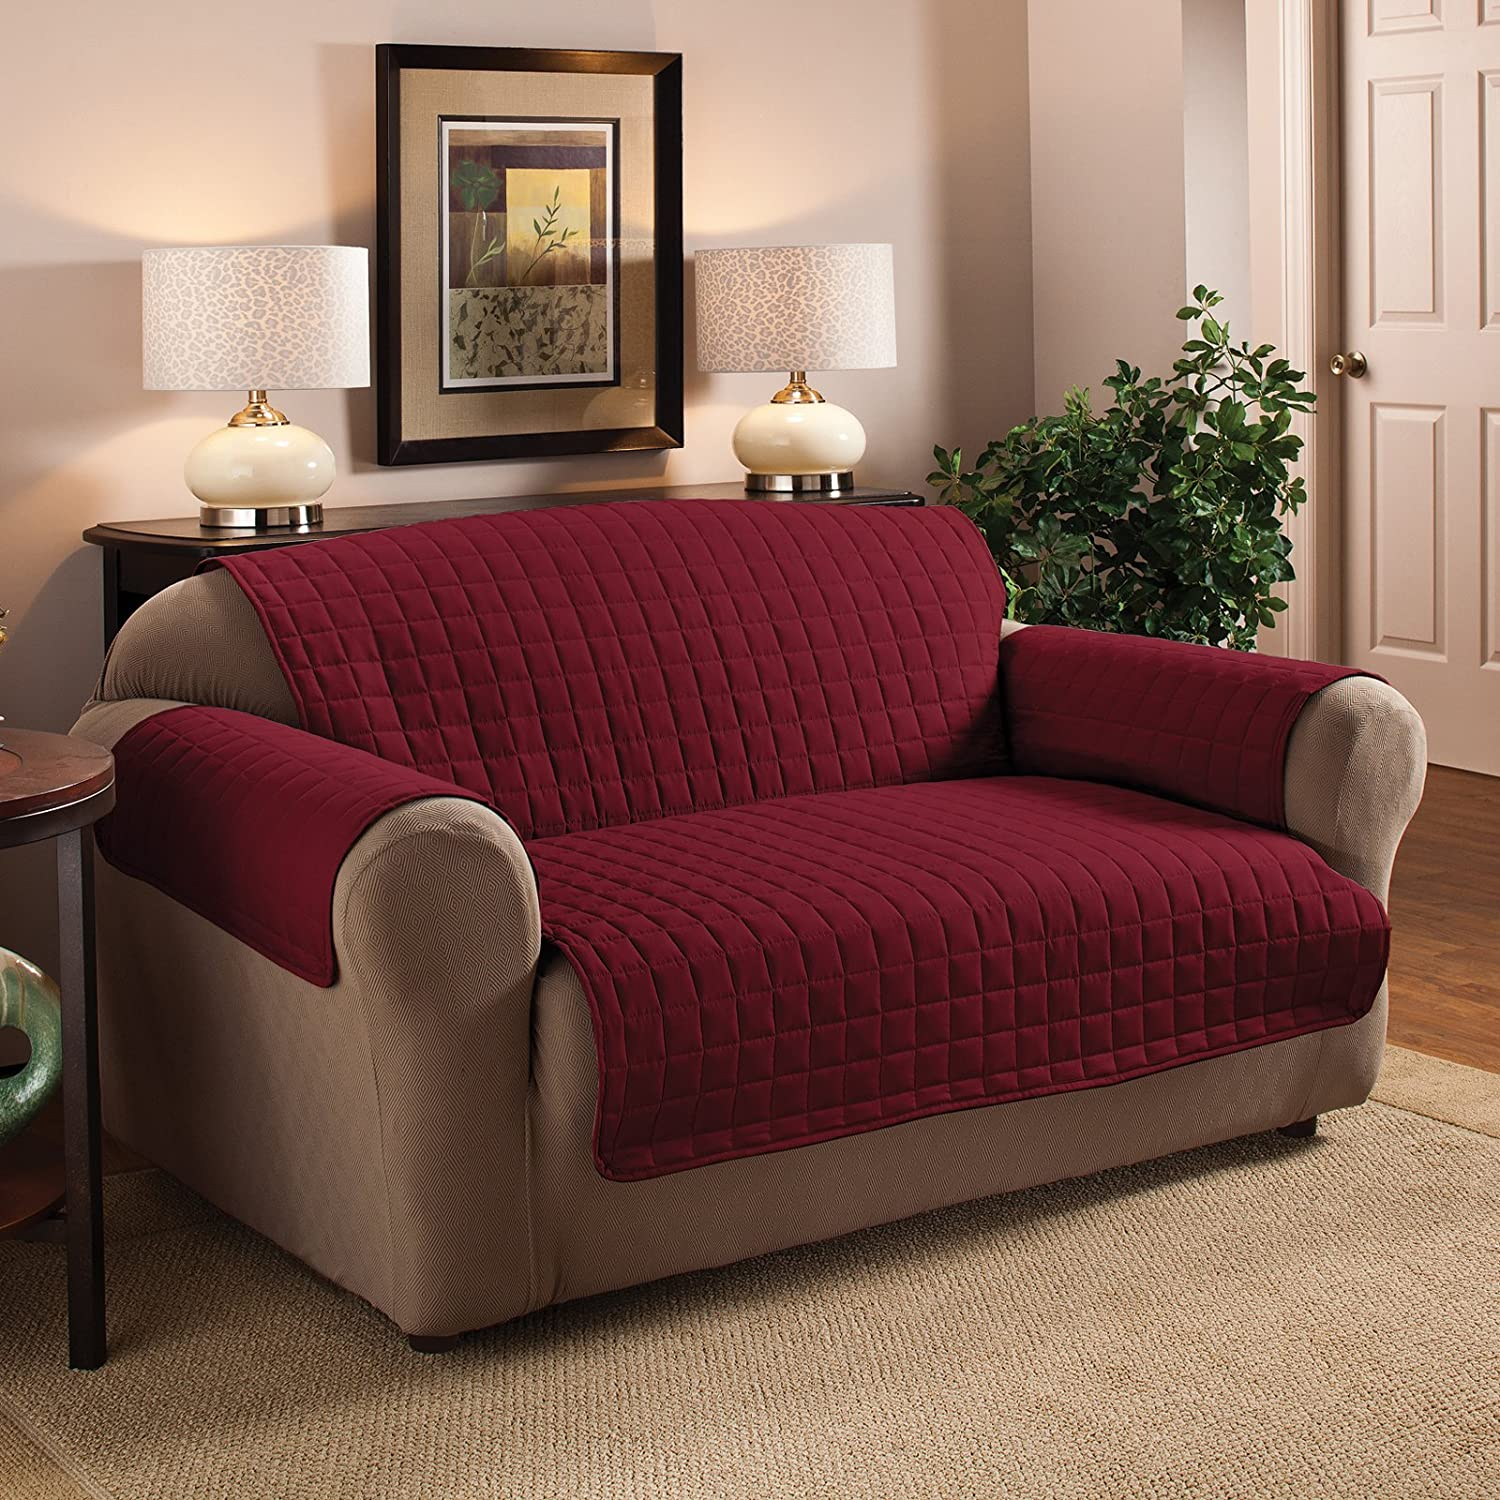 Amazon Sofa Slipcovers Home & Kitchen